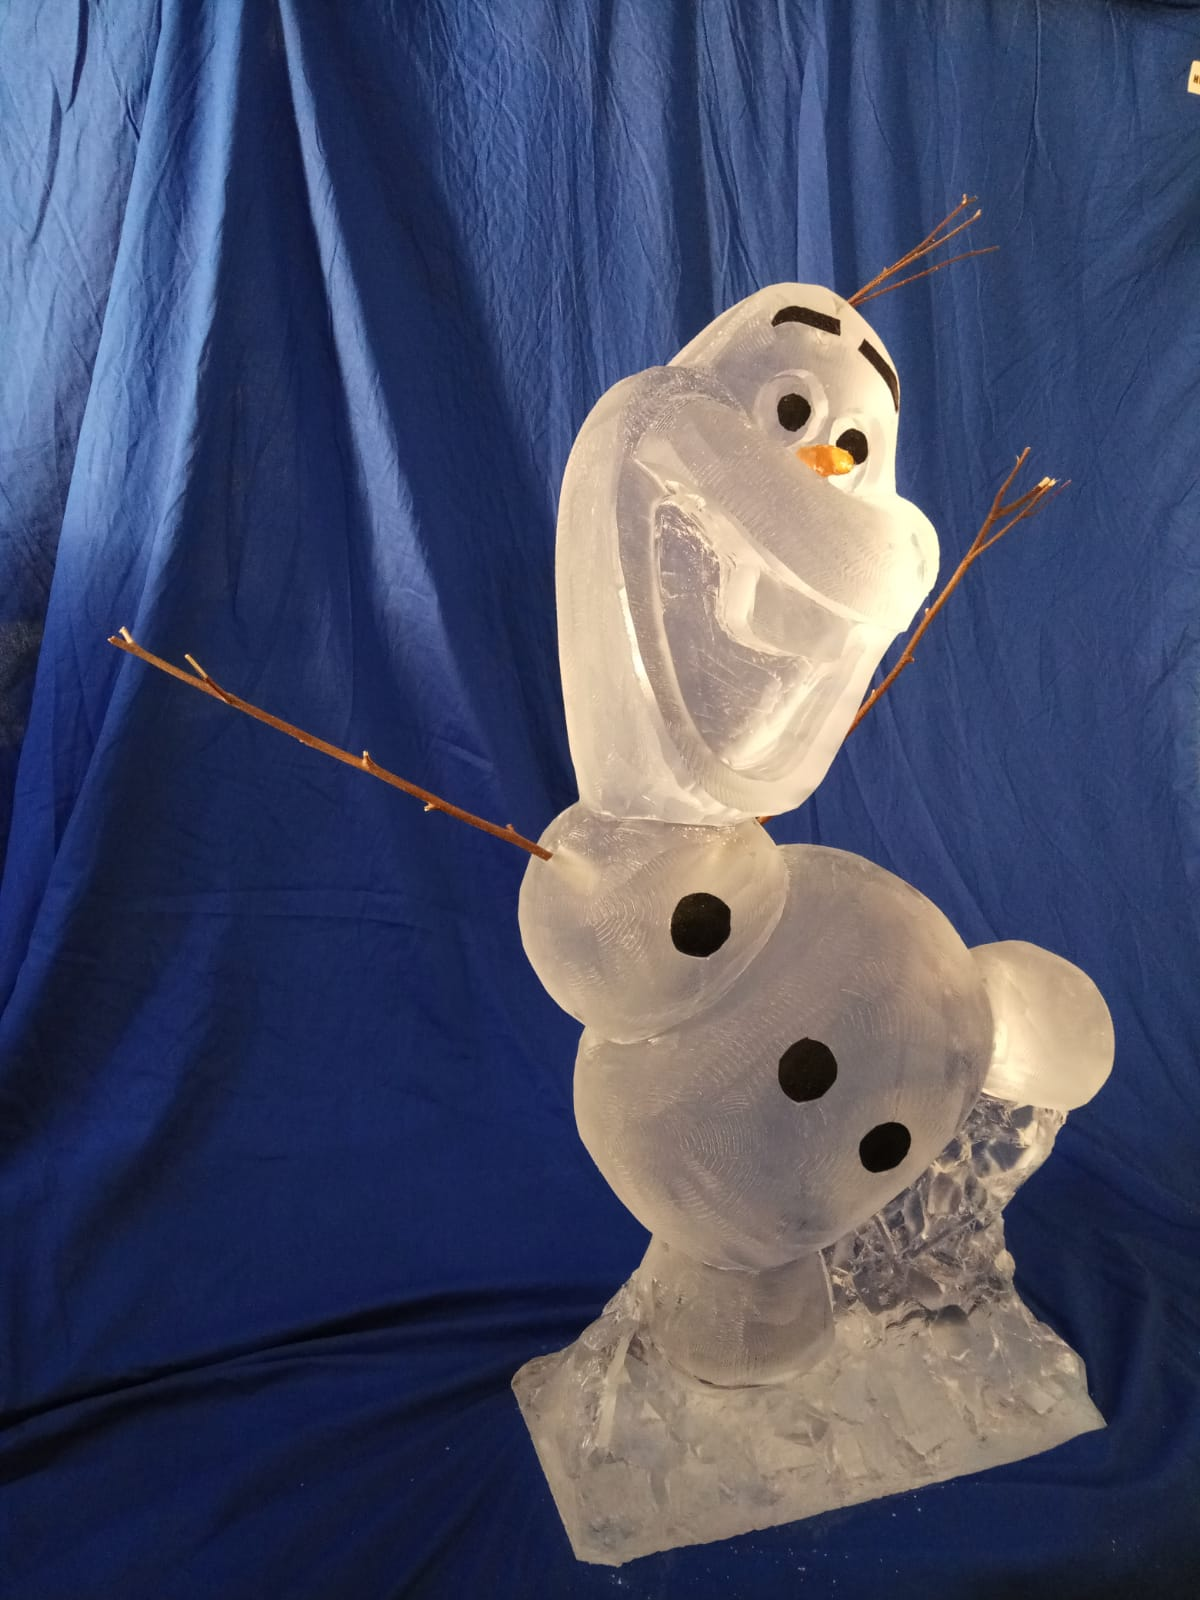 Olaf ice sculpture